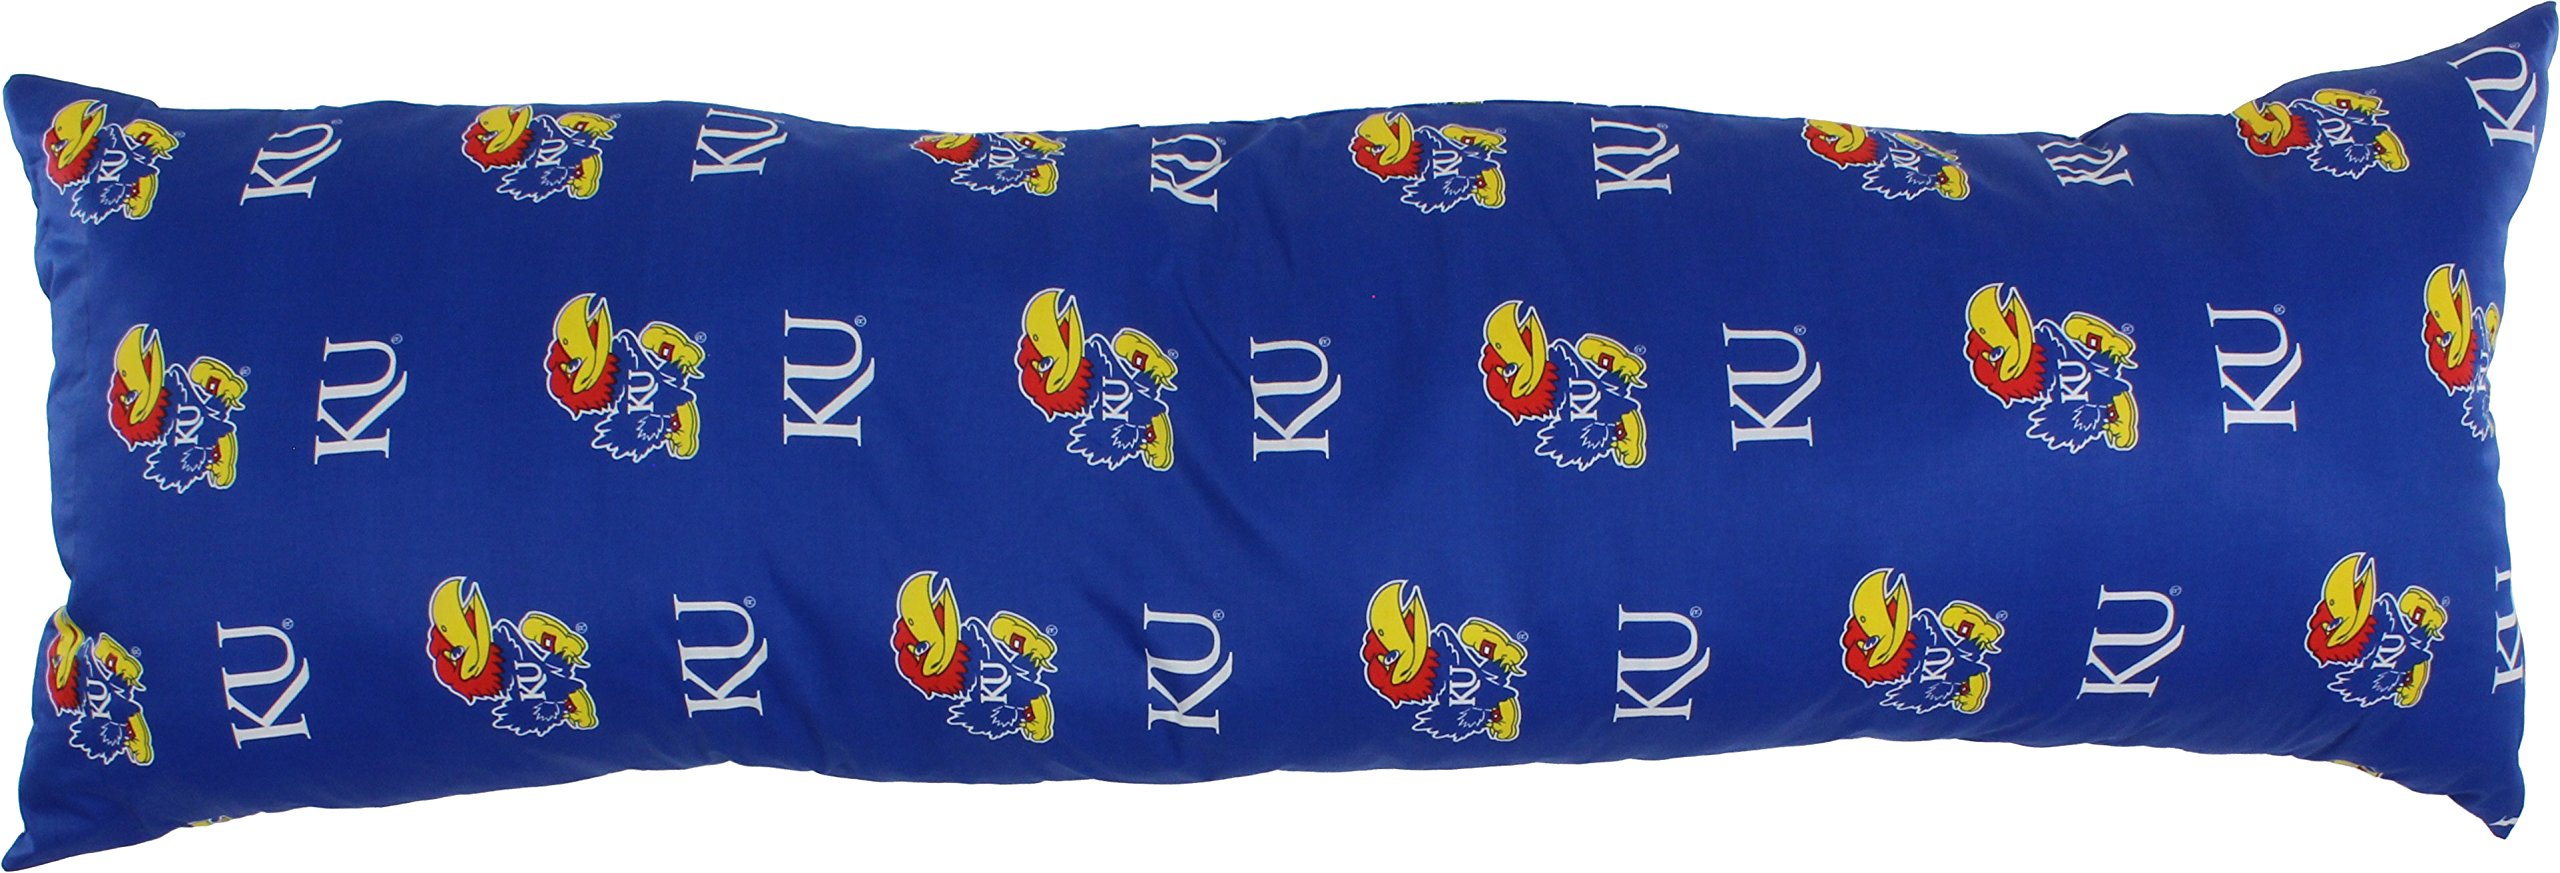 College Covers Kansas Jayhawks Printed Body Pillow, 20'' x 60''